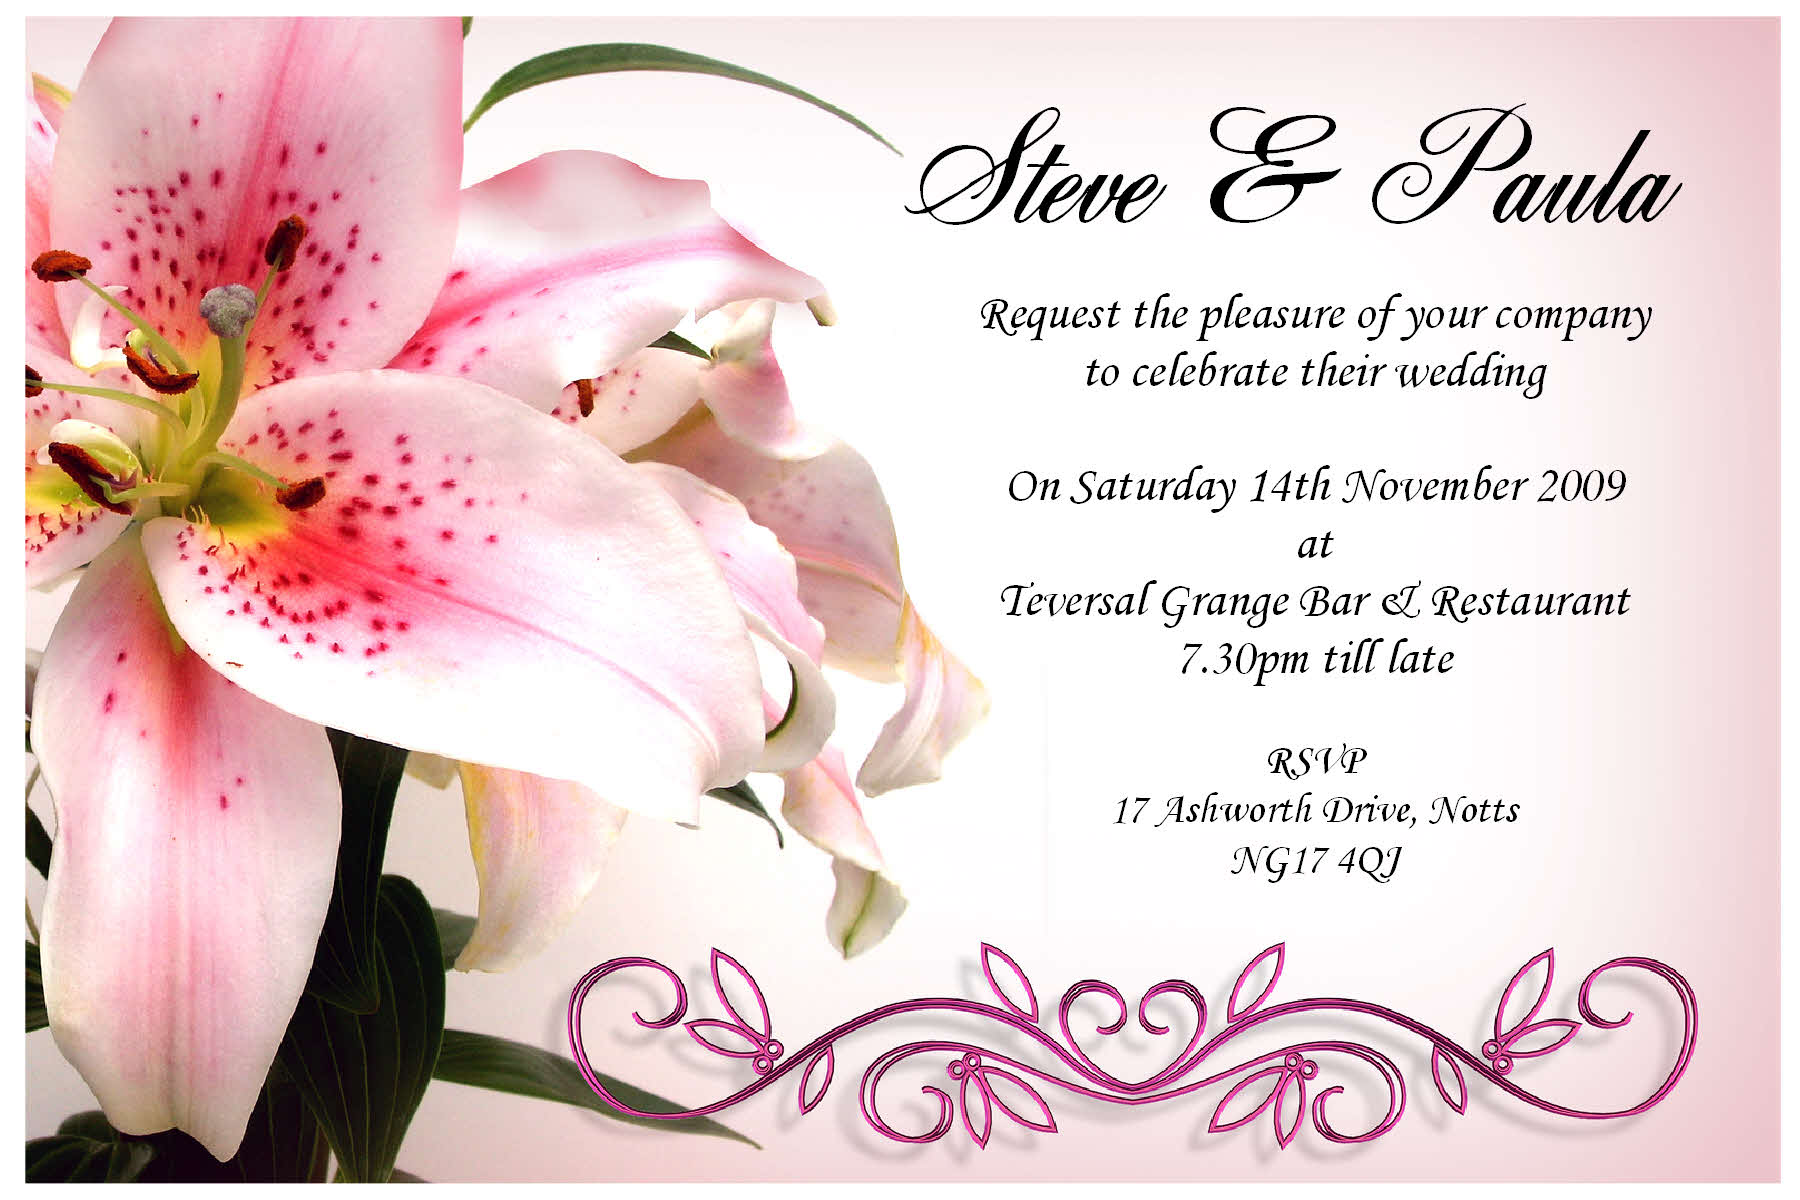 Precious Moments Wedding Invitations for nice invitation layout